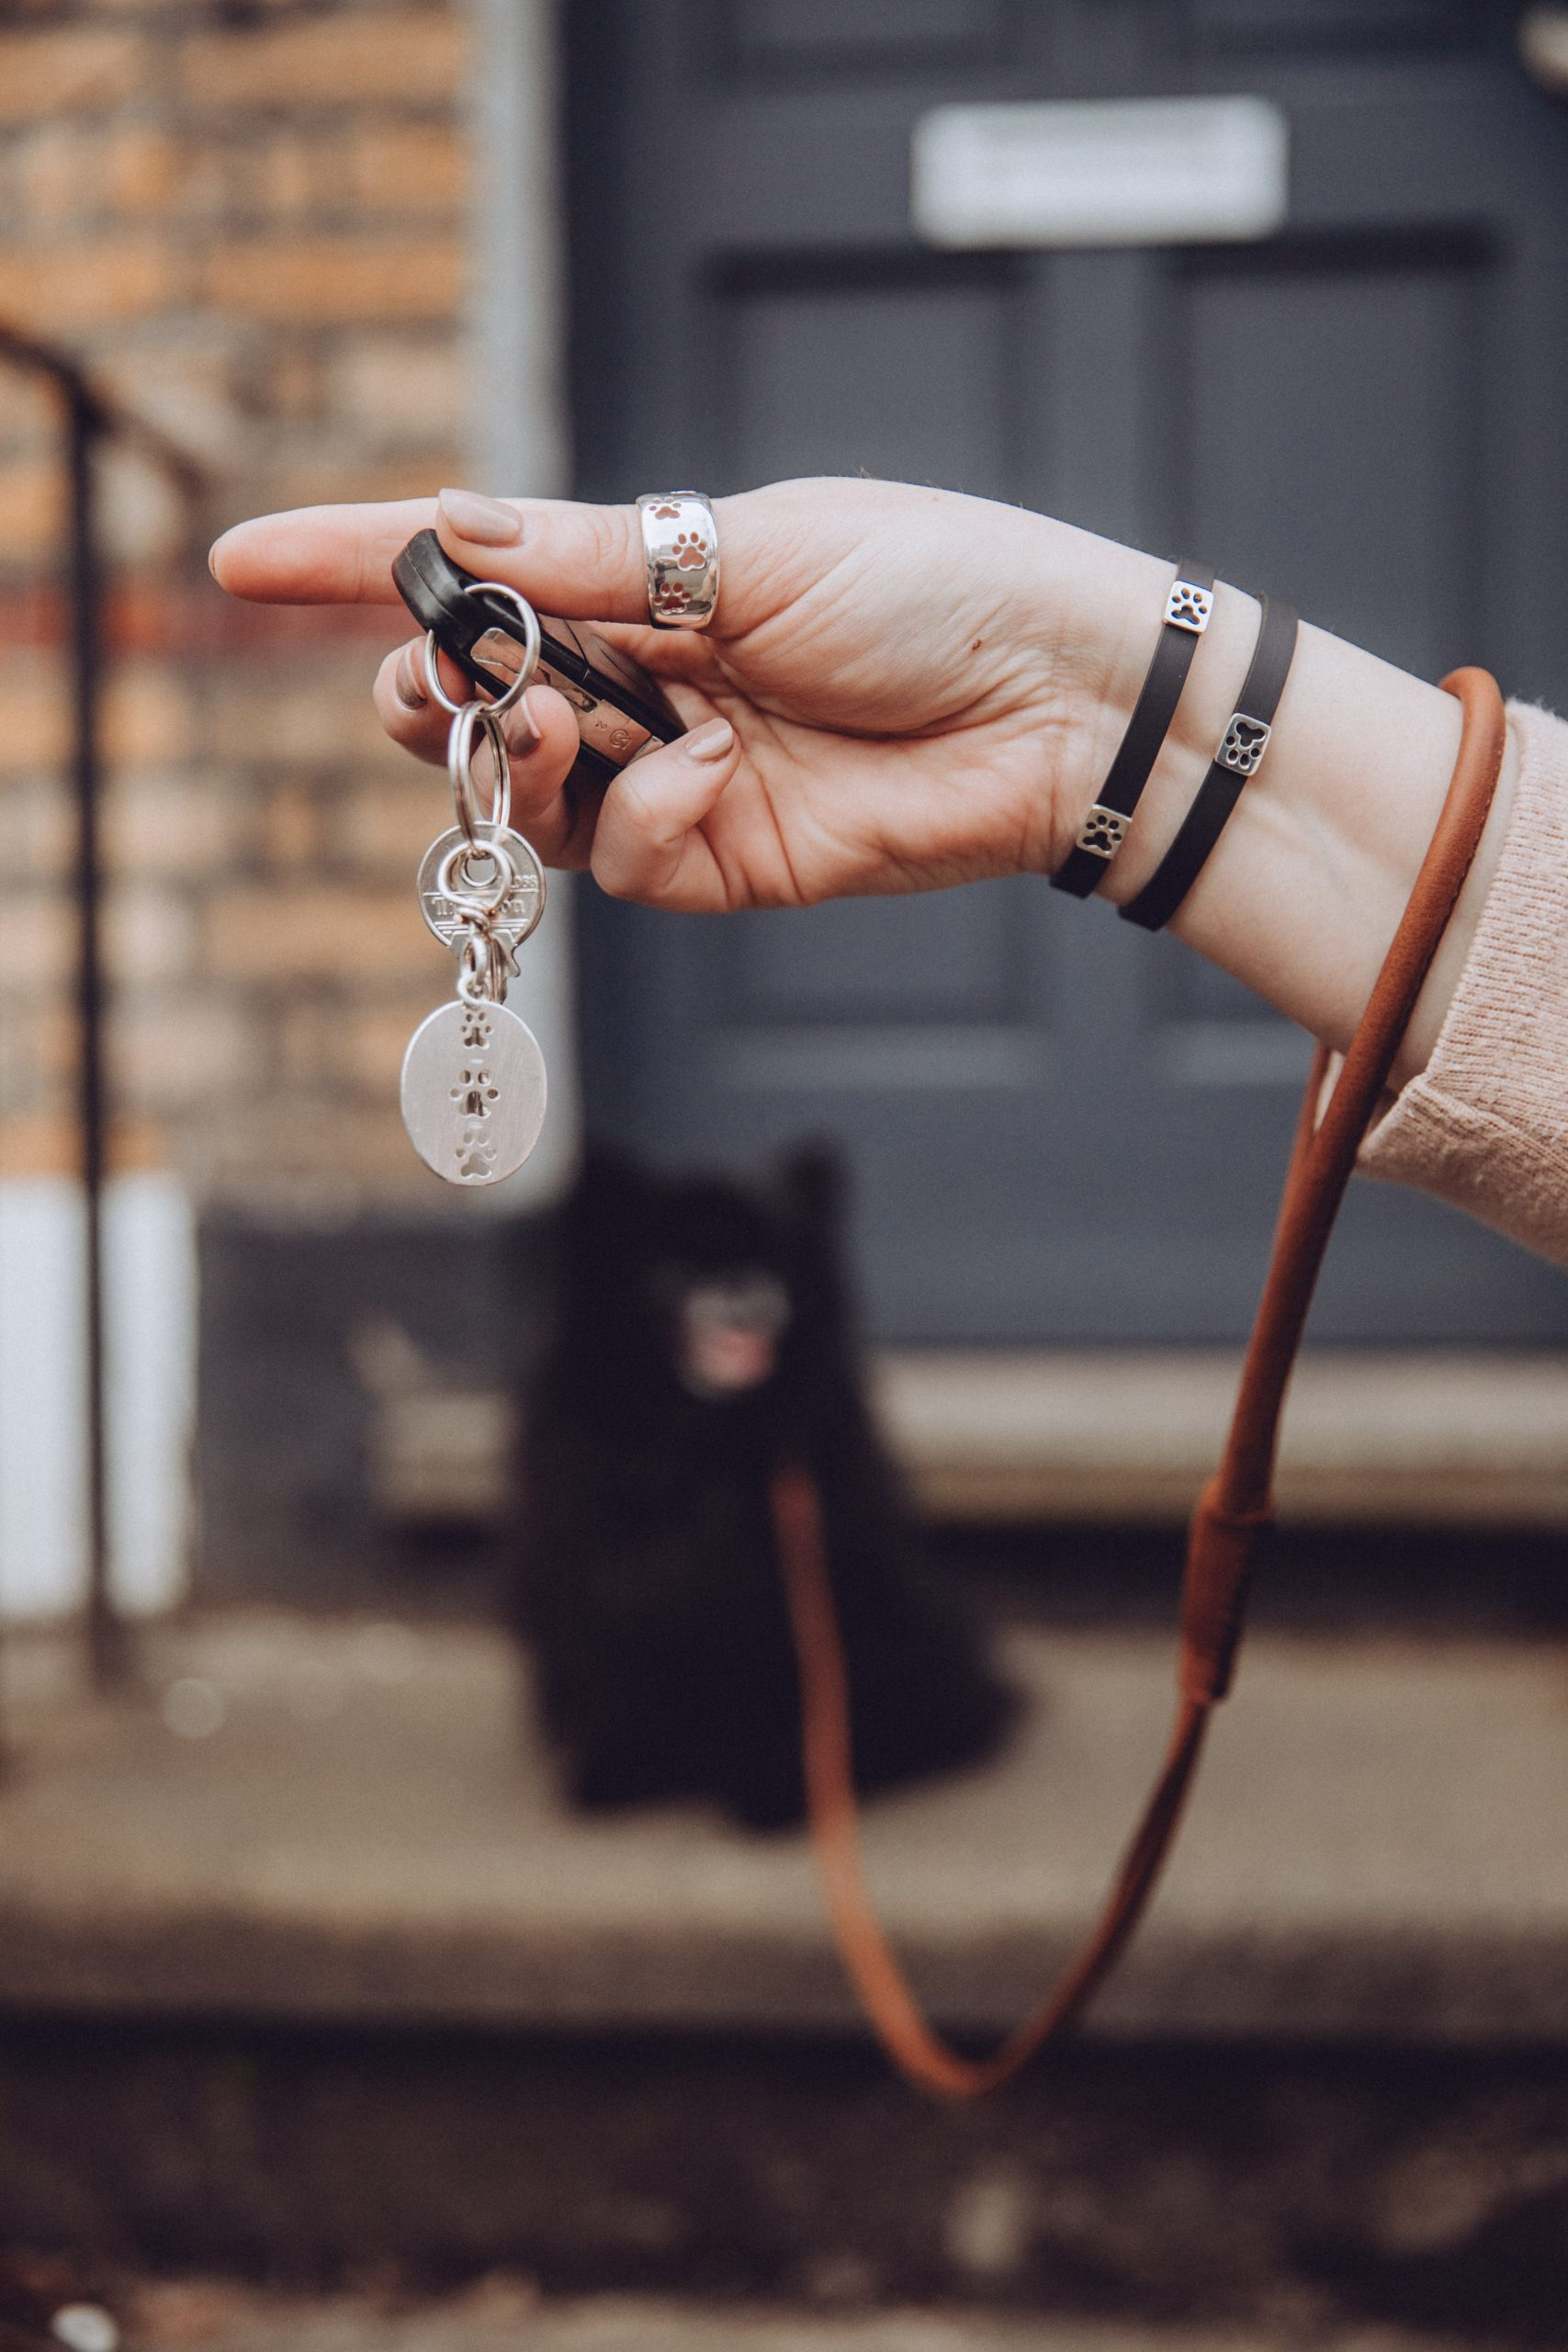 Silver key ring attached to car keys, while Kimberly wears the silver paw print ring, and rubber paw print bracelets